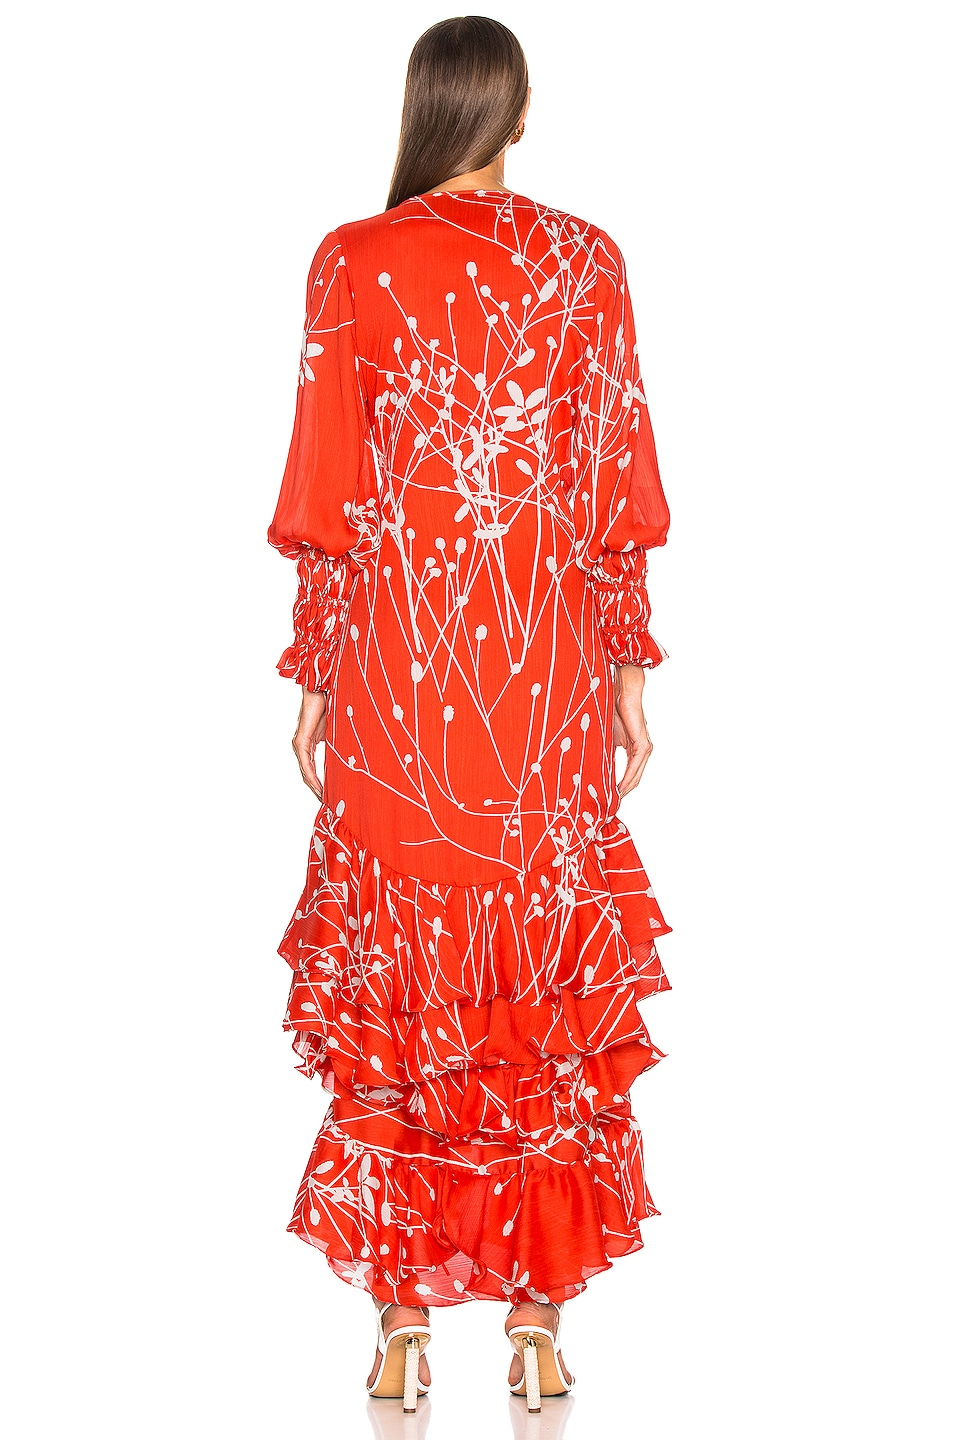 Image 3 of Alexis Rodina Dress in Coral Petals